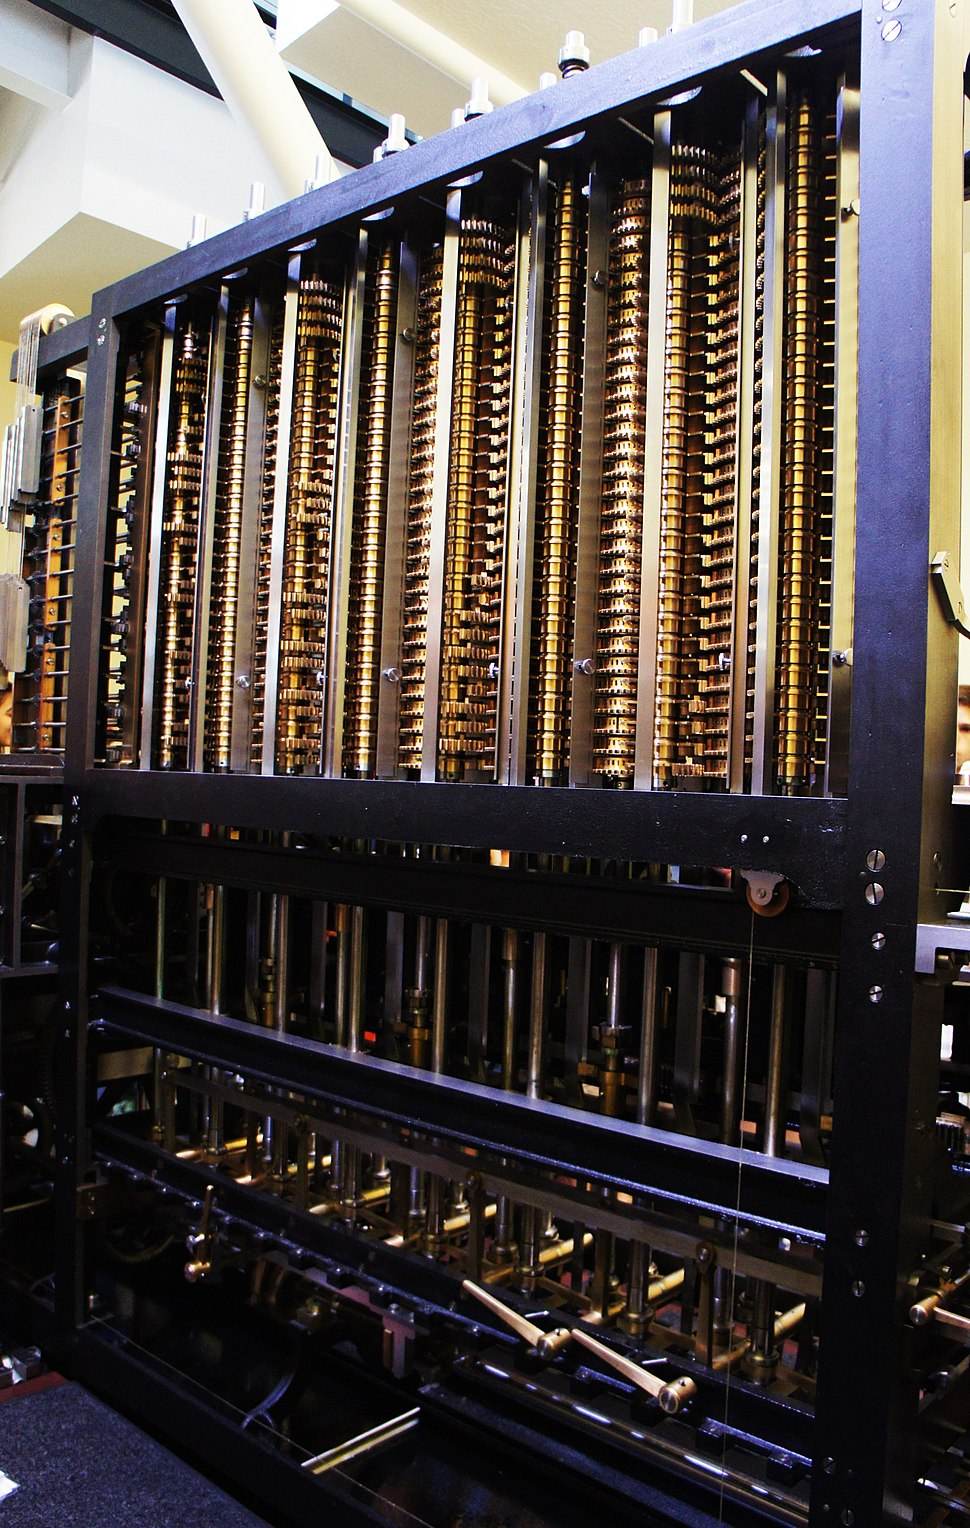 Difference Engine Computer History Museum - Aug 2015